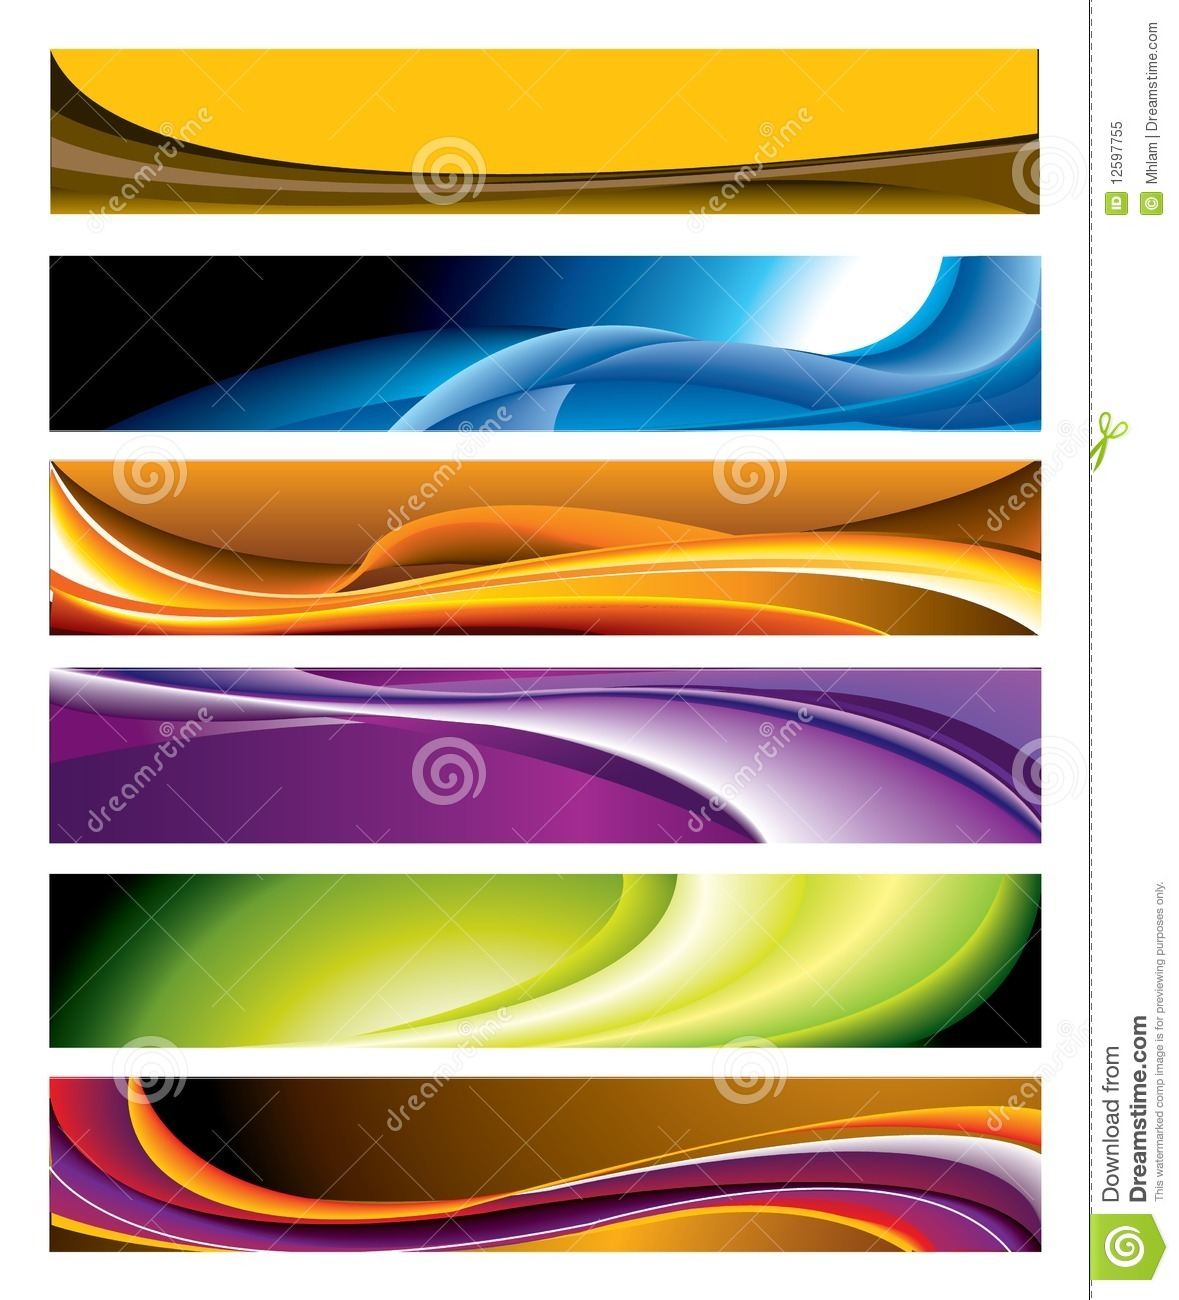 White Wave 3d Wallpaper Colorful Horizontal Banner Collection Royalty Free Stock